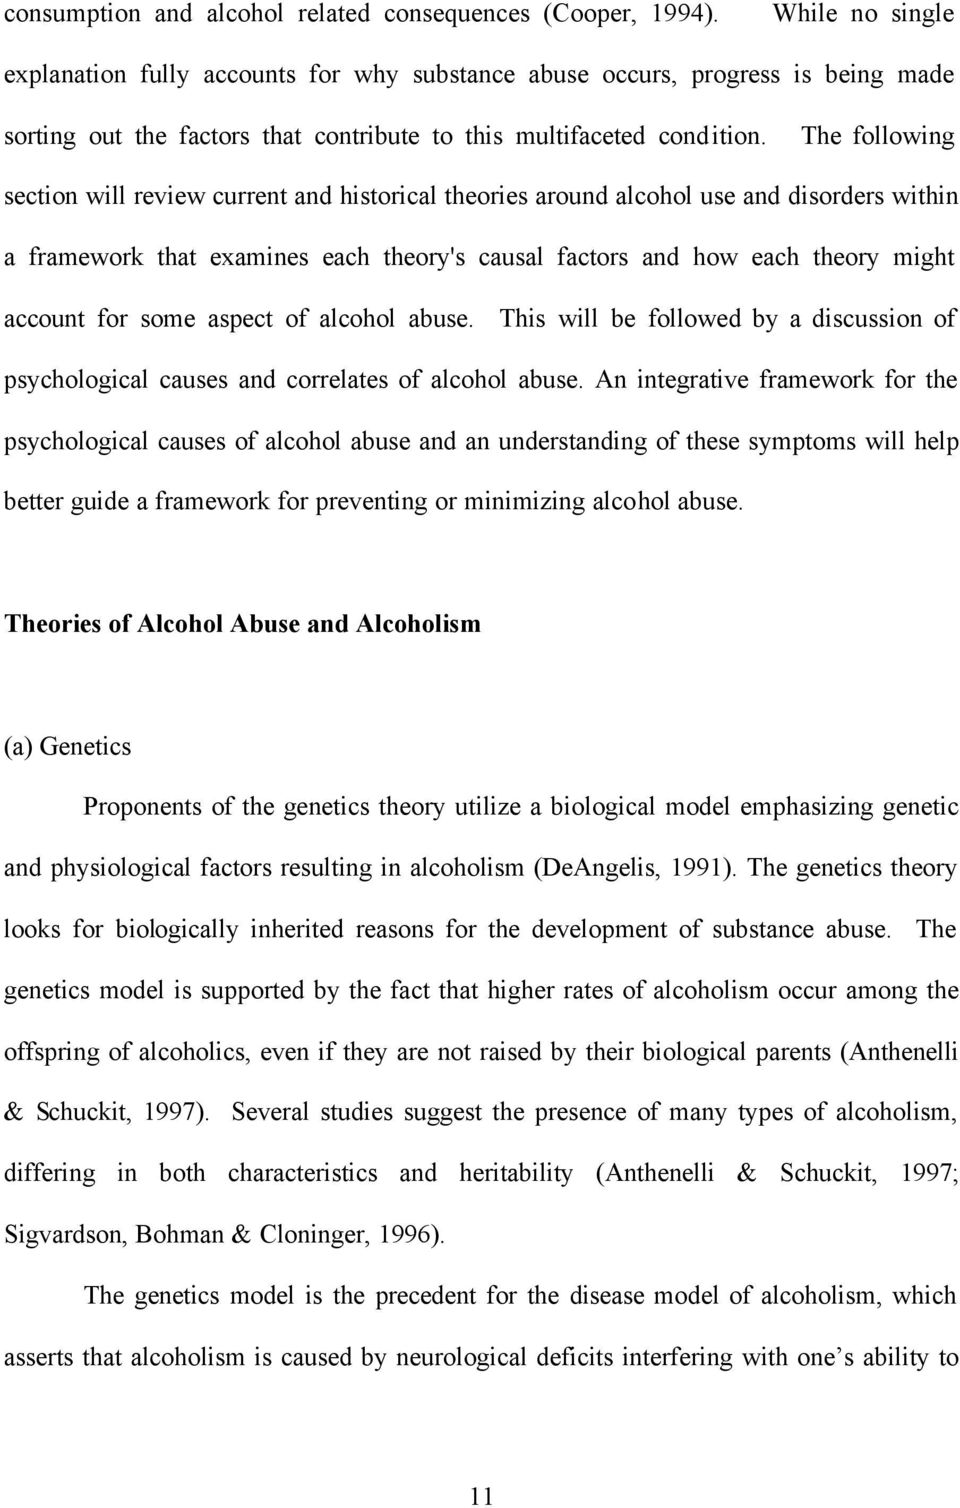 The following section will review current and historical theories around alcohol use and disorders within a framework that examines each theory's causal factors and how each theory might account for